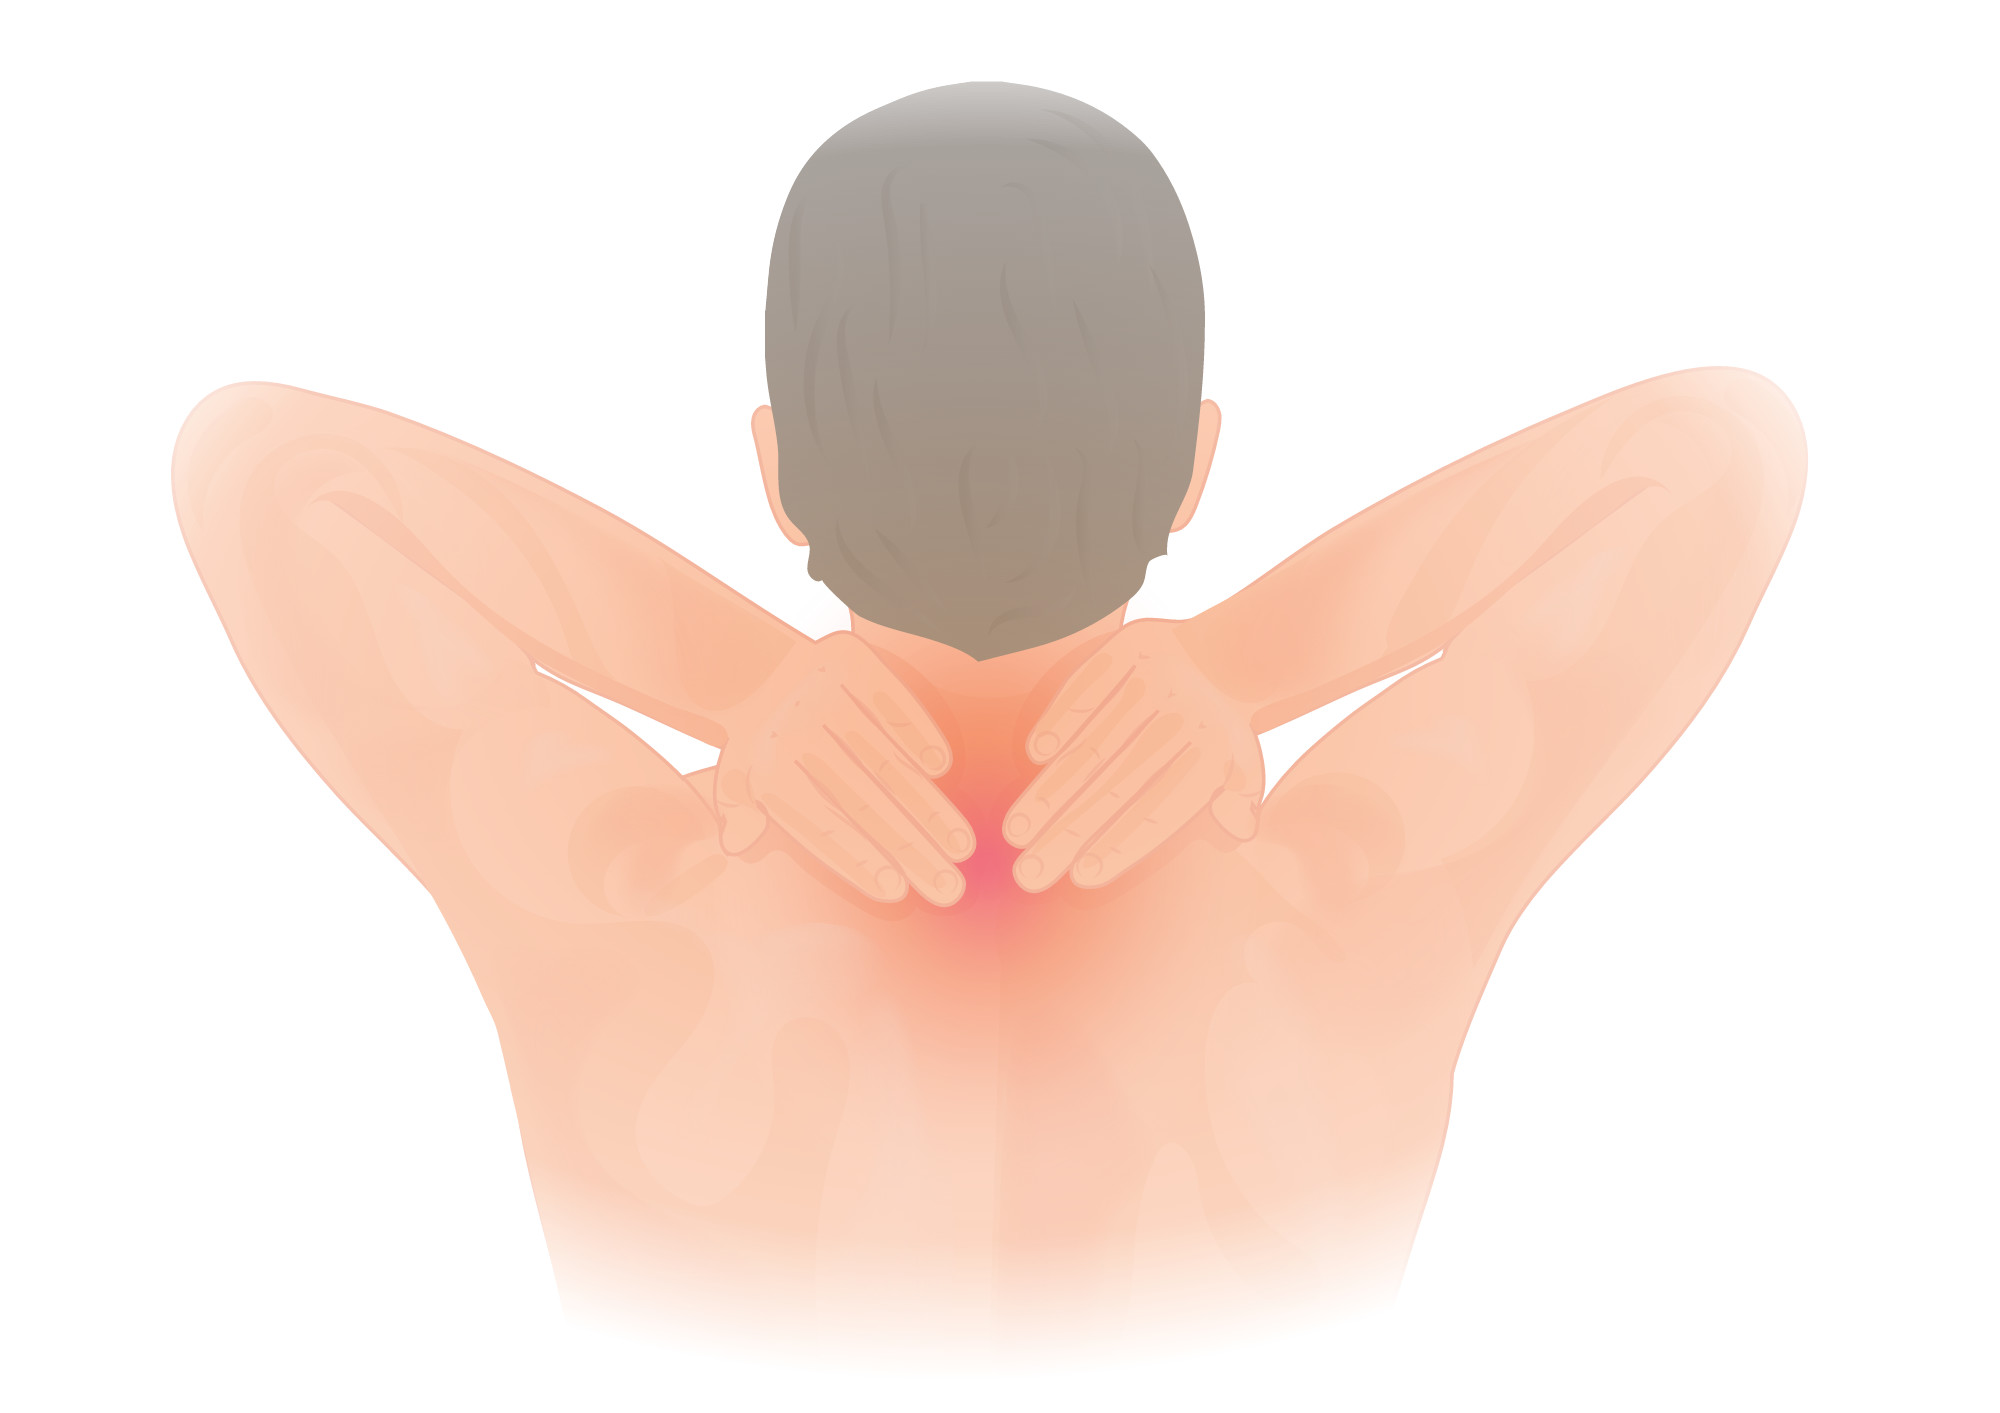 Relievus can treat symptoms of neck pain